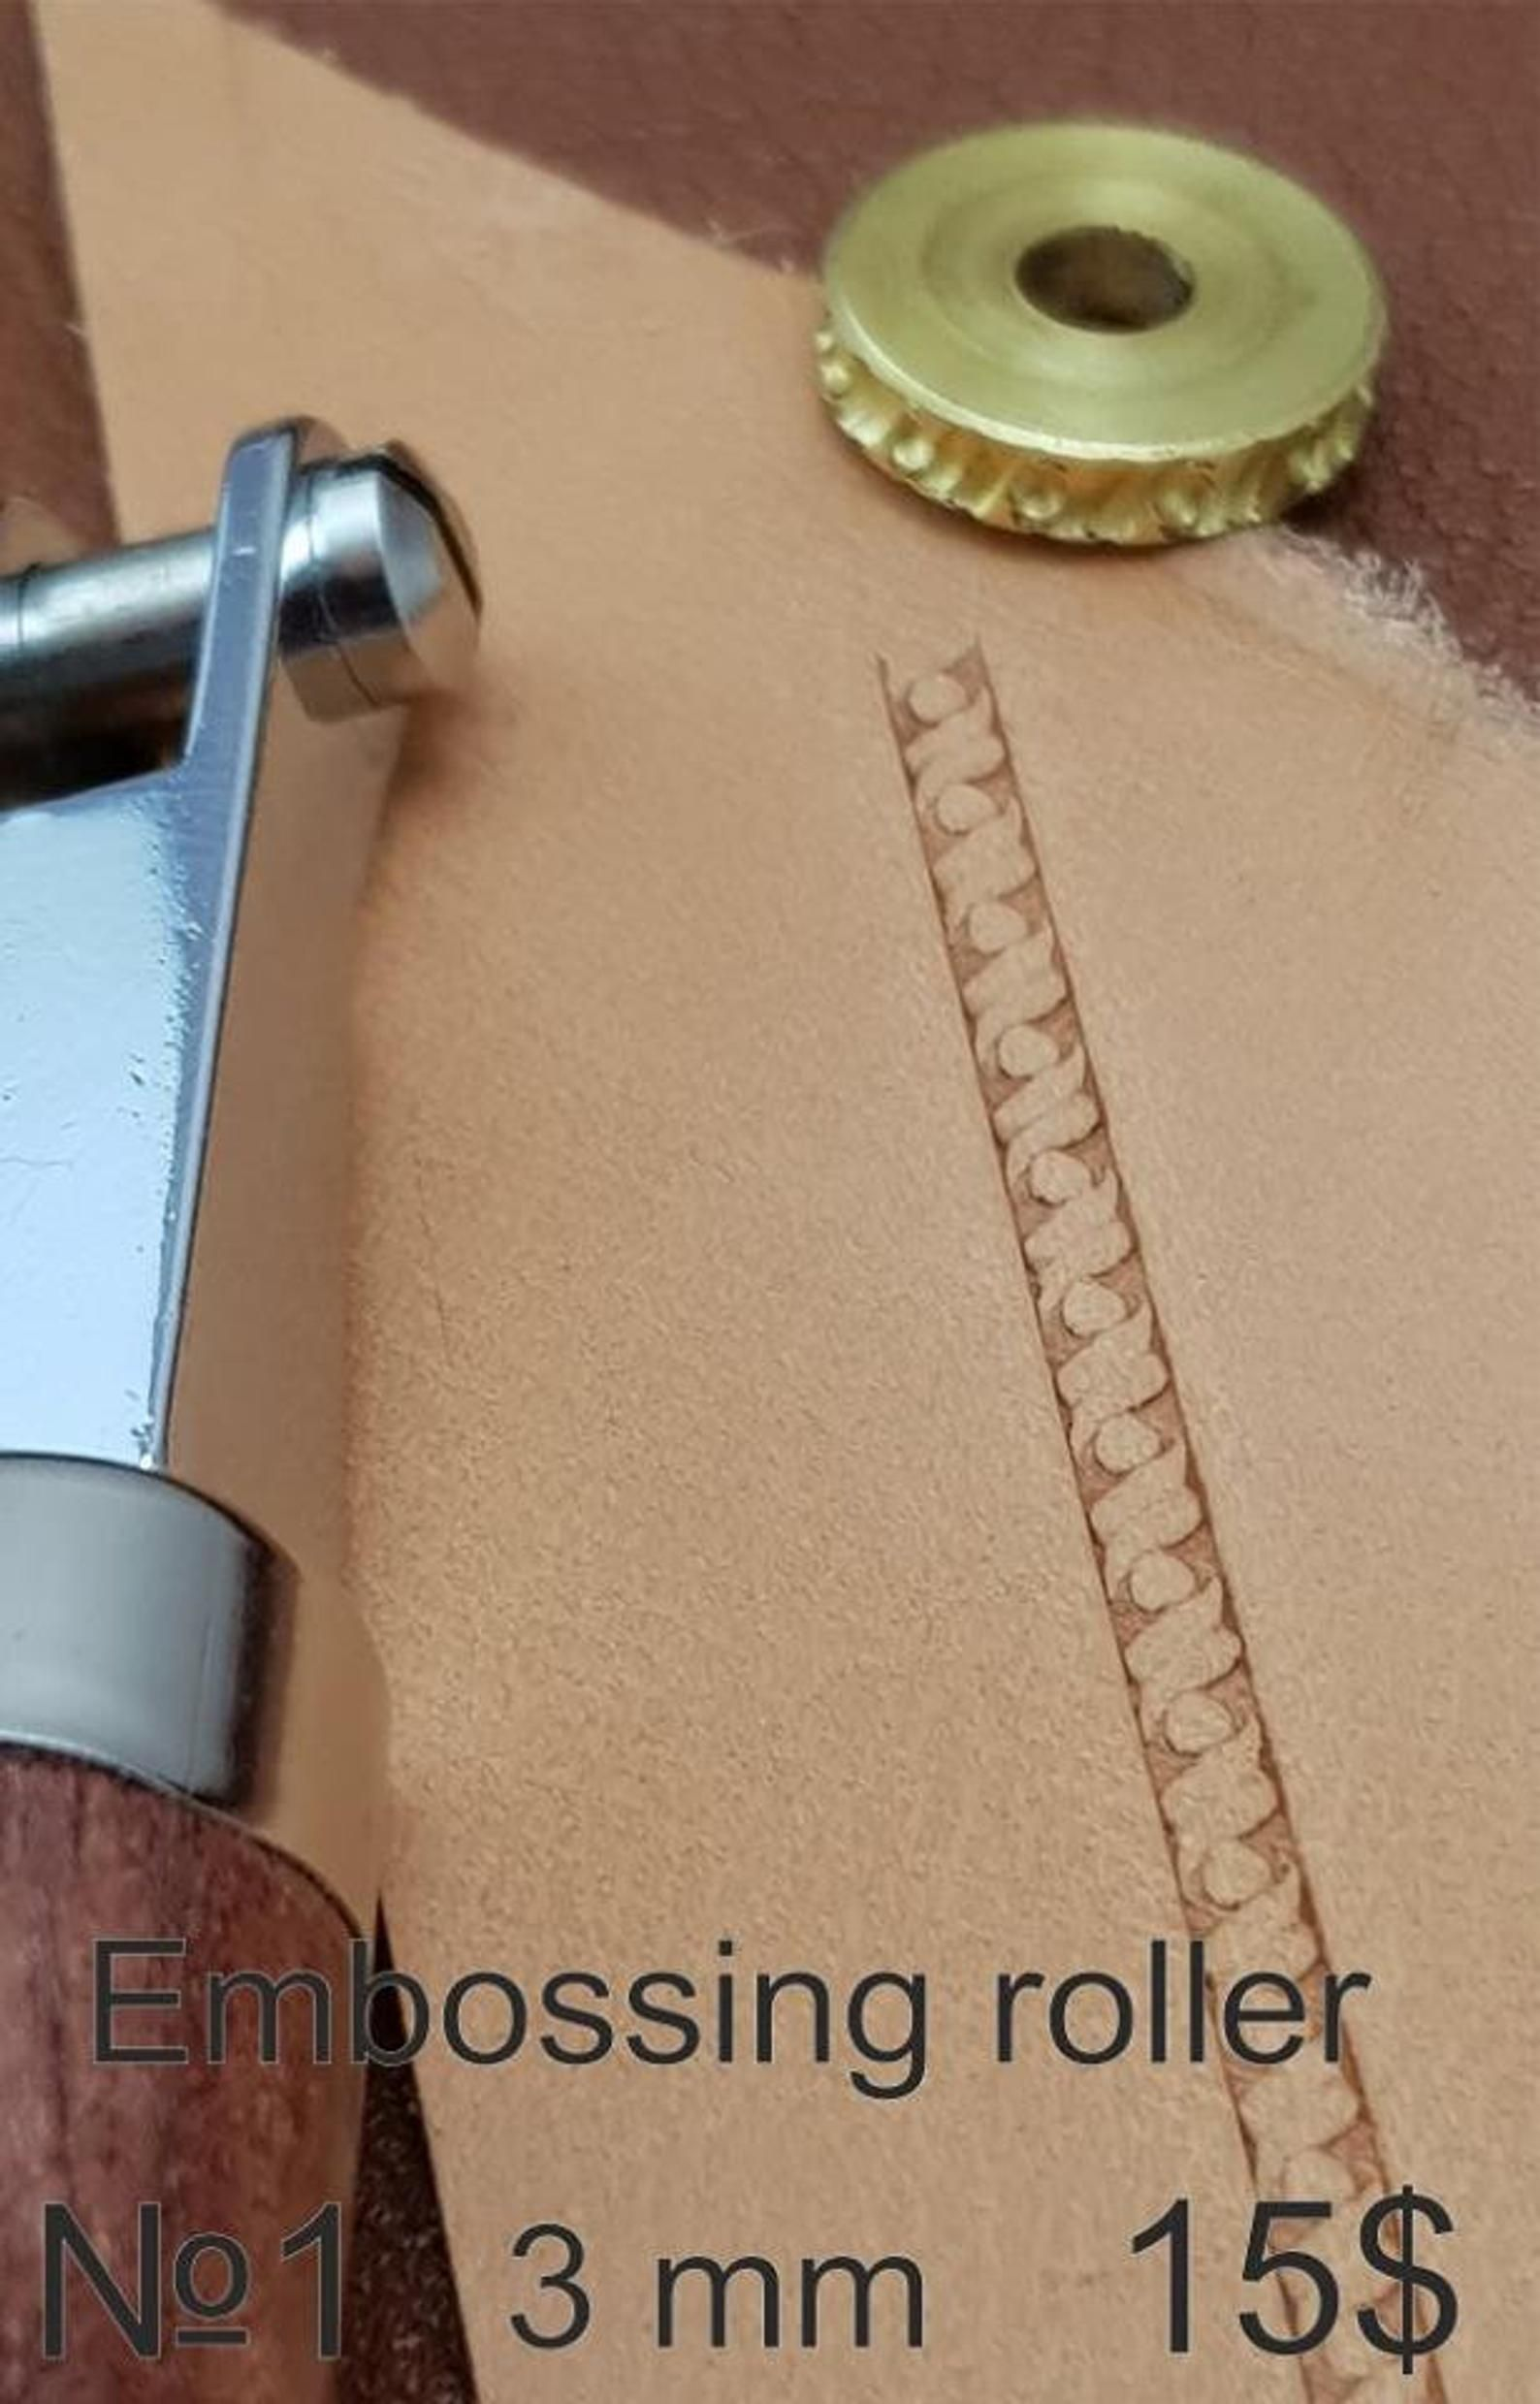 #Embossing roller-6 Tools for leather crafts